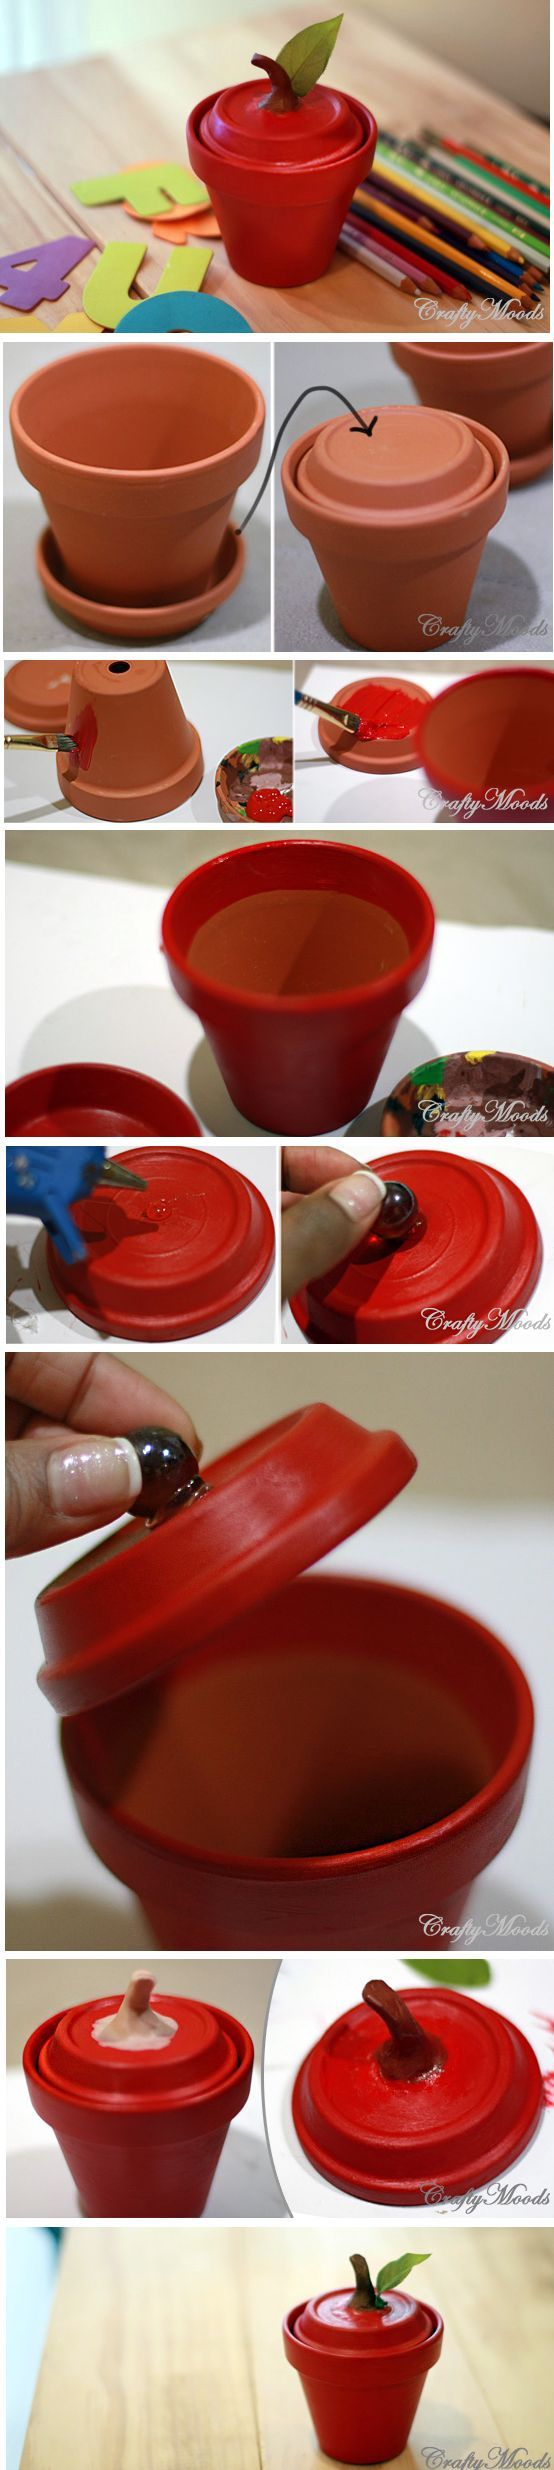 DIY Apple Clay Pot Tutorial